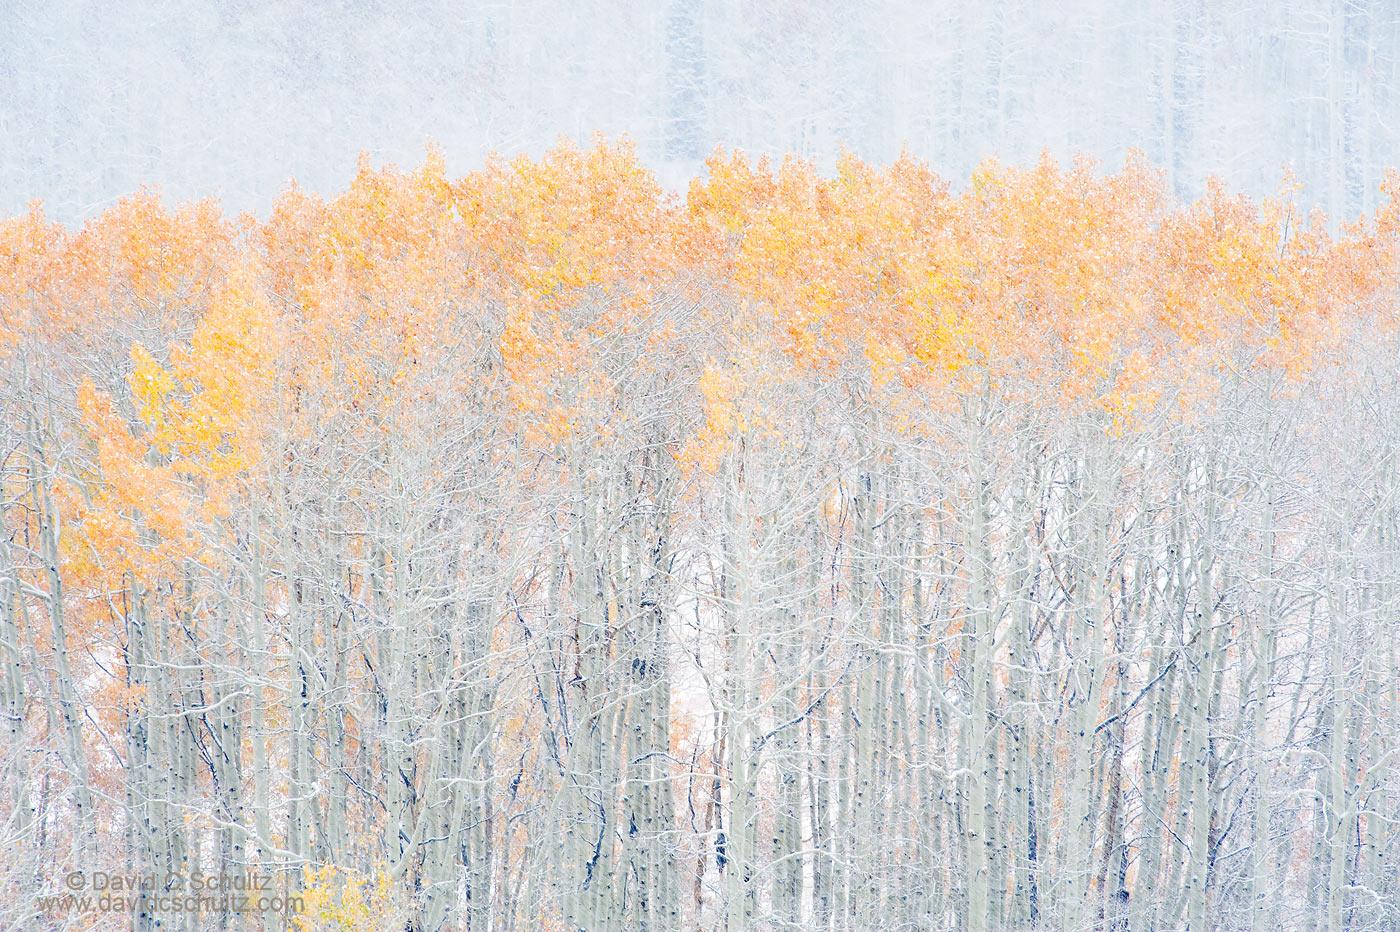 Utah aspen trees in the fall - Image #3-5368